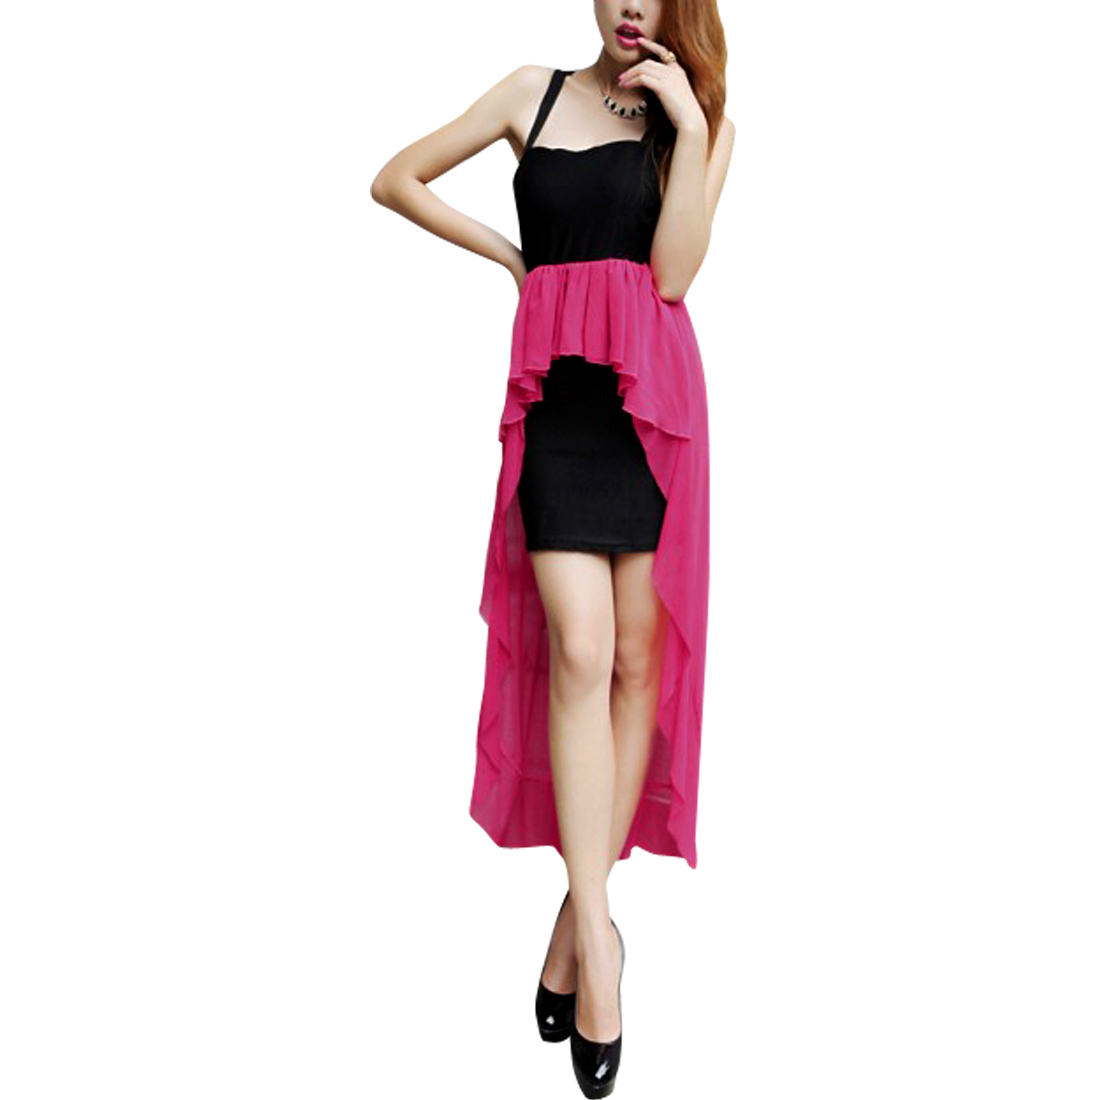 Women Elastic Waist Sleeveless Splice Dress Fuchsia Black XS